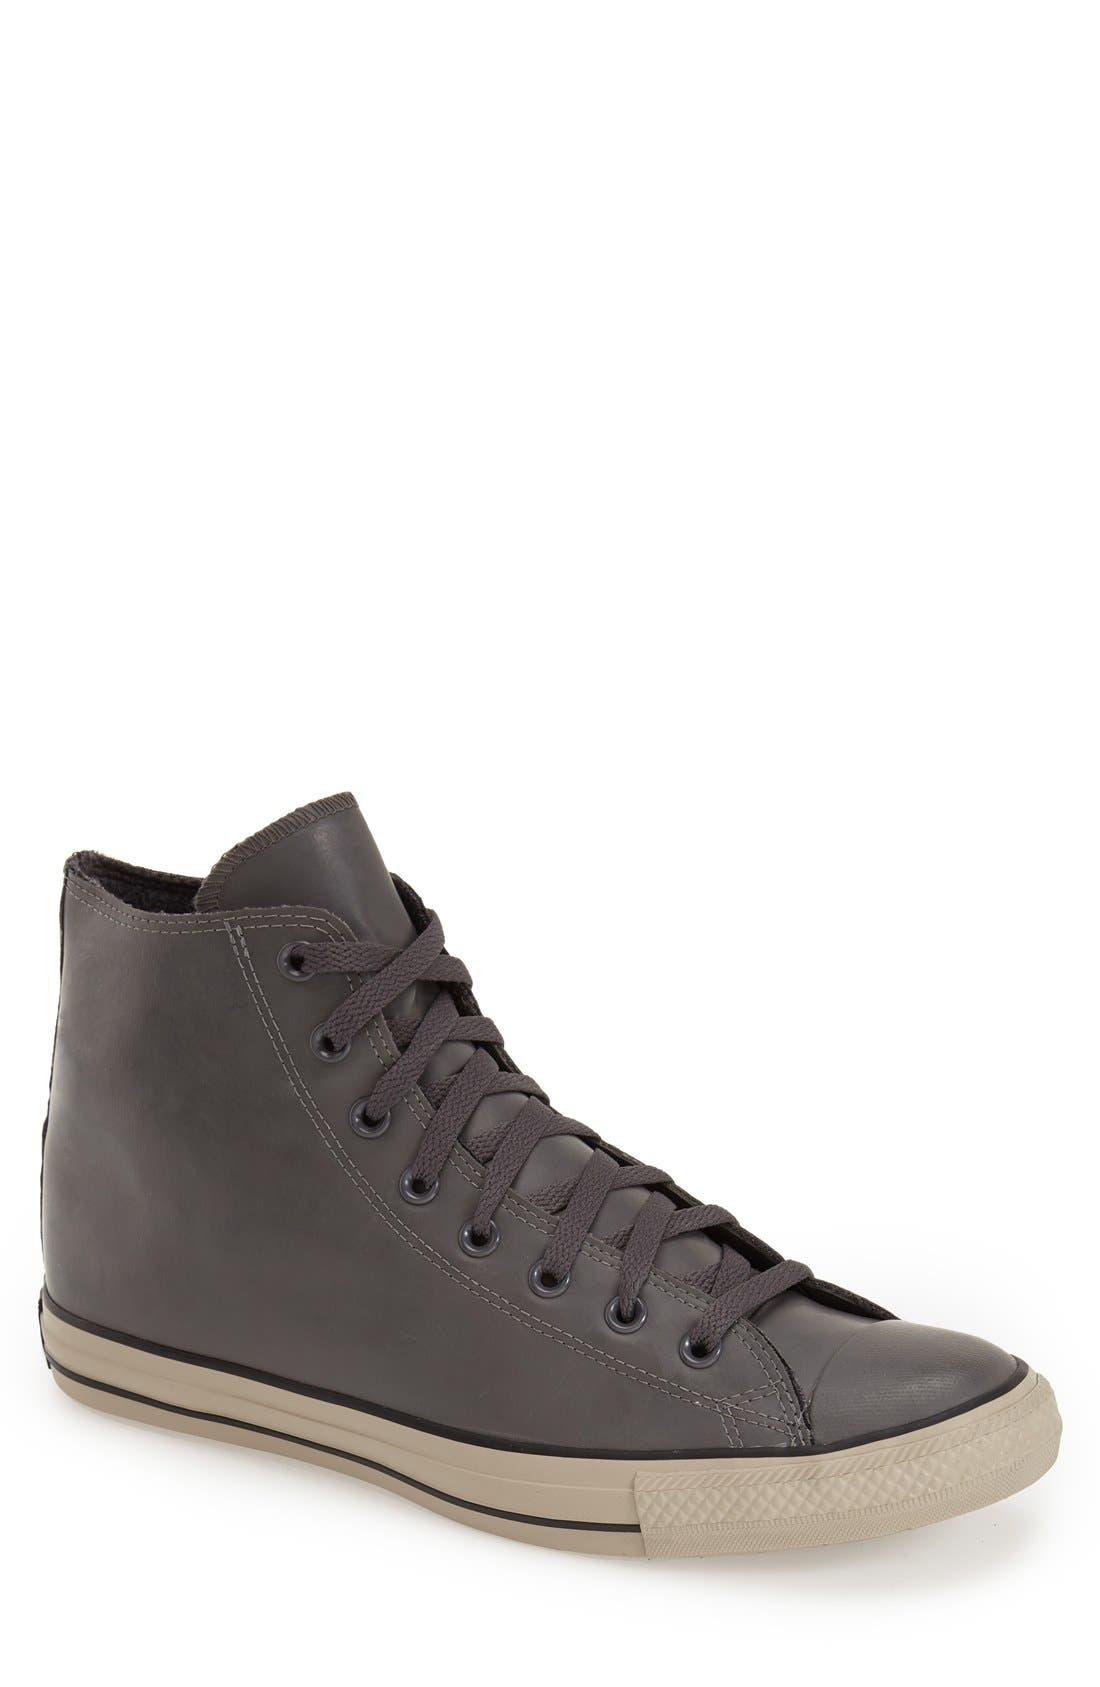 Alternate Image 1 Selected - Converse Chuck Taylor® All Star® Rubber High Top Sneaker (Men)